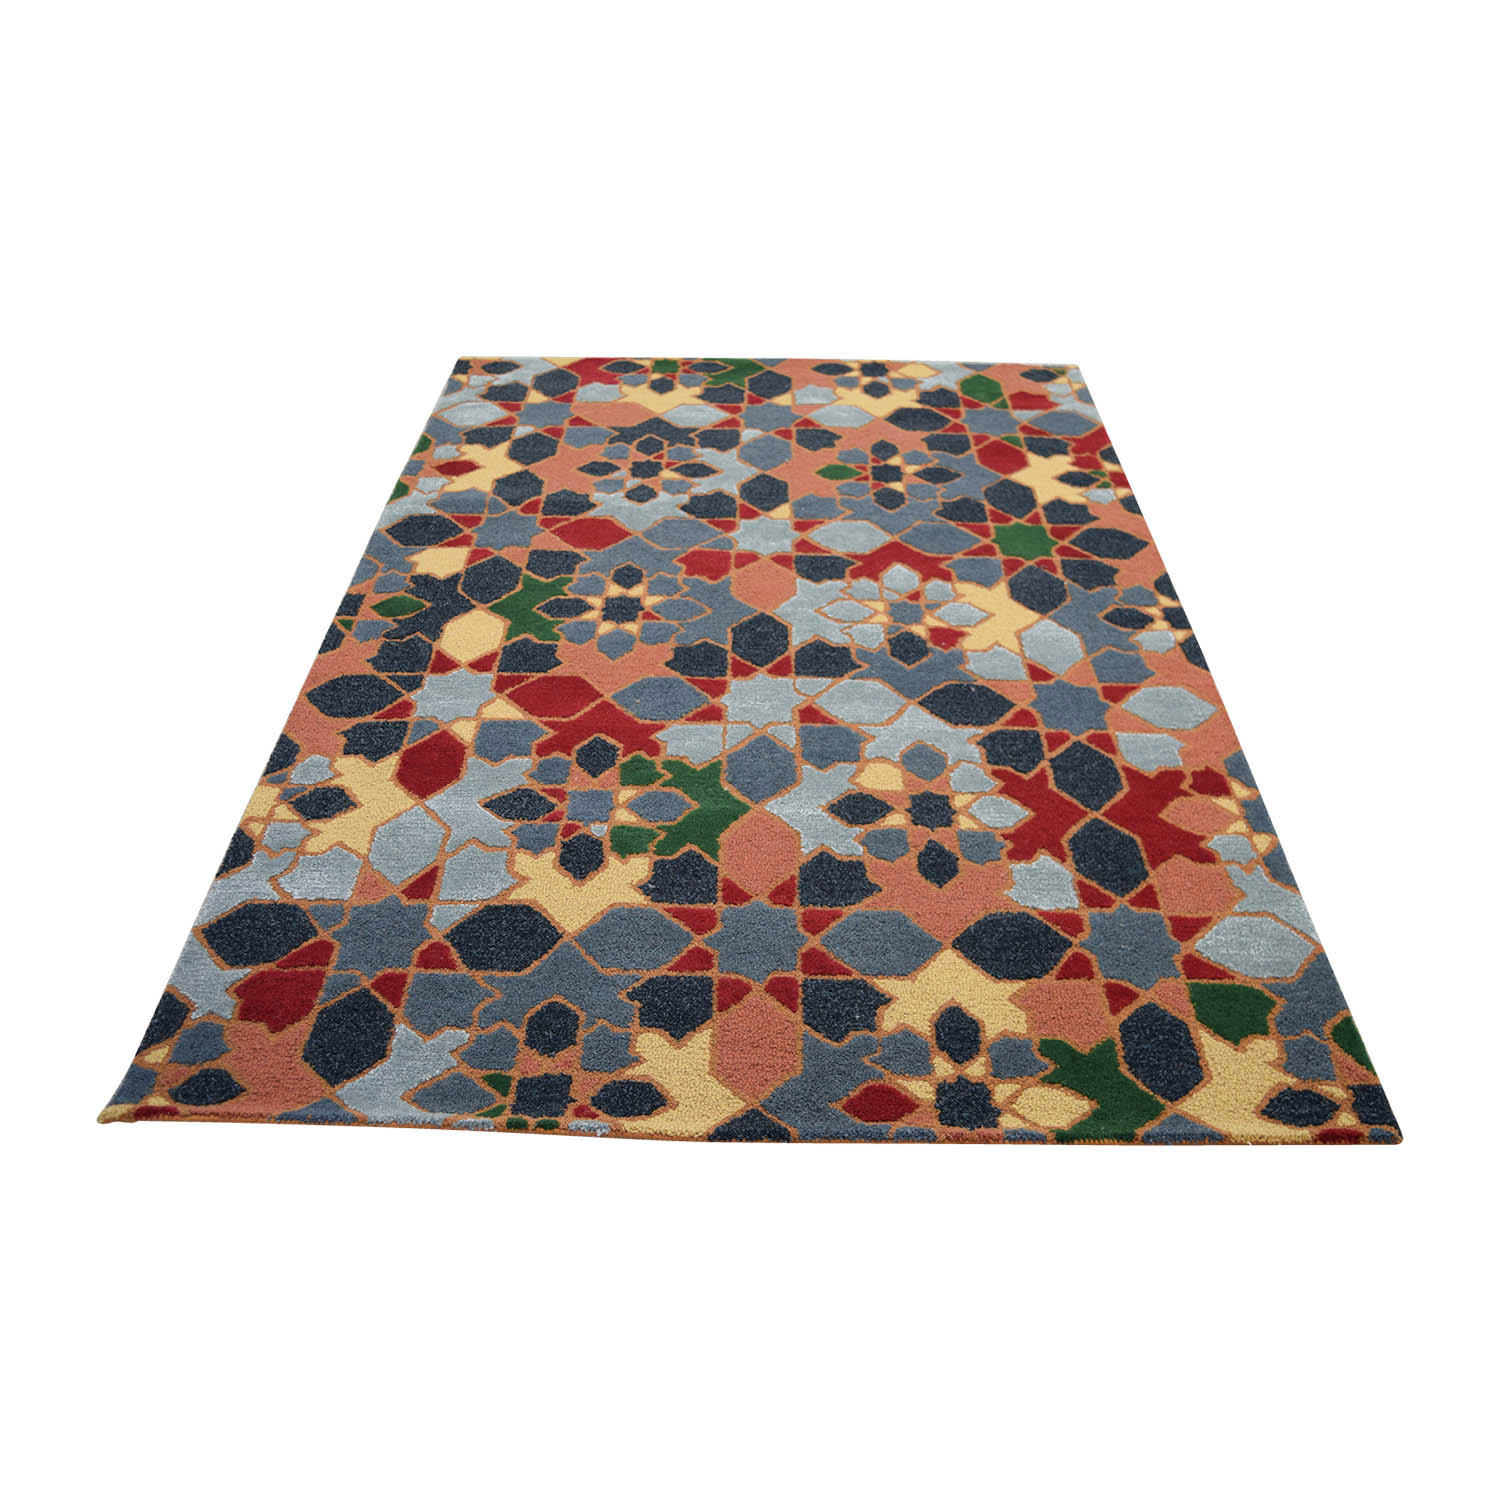 Obeetee Obeetee Colorful Floral Rug used